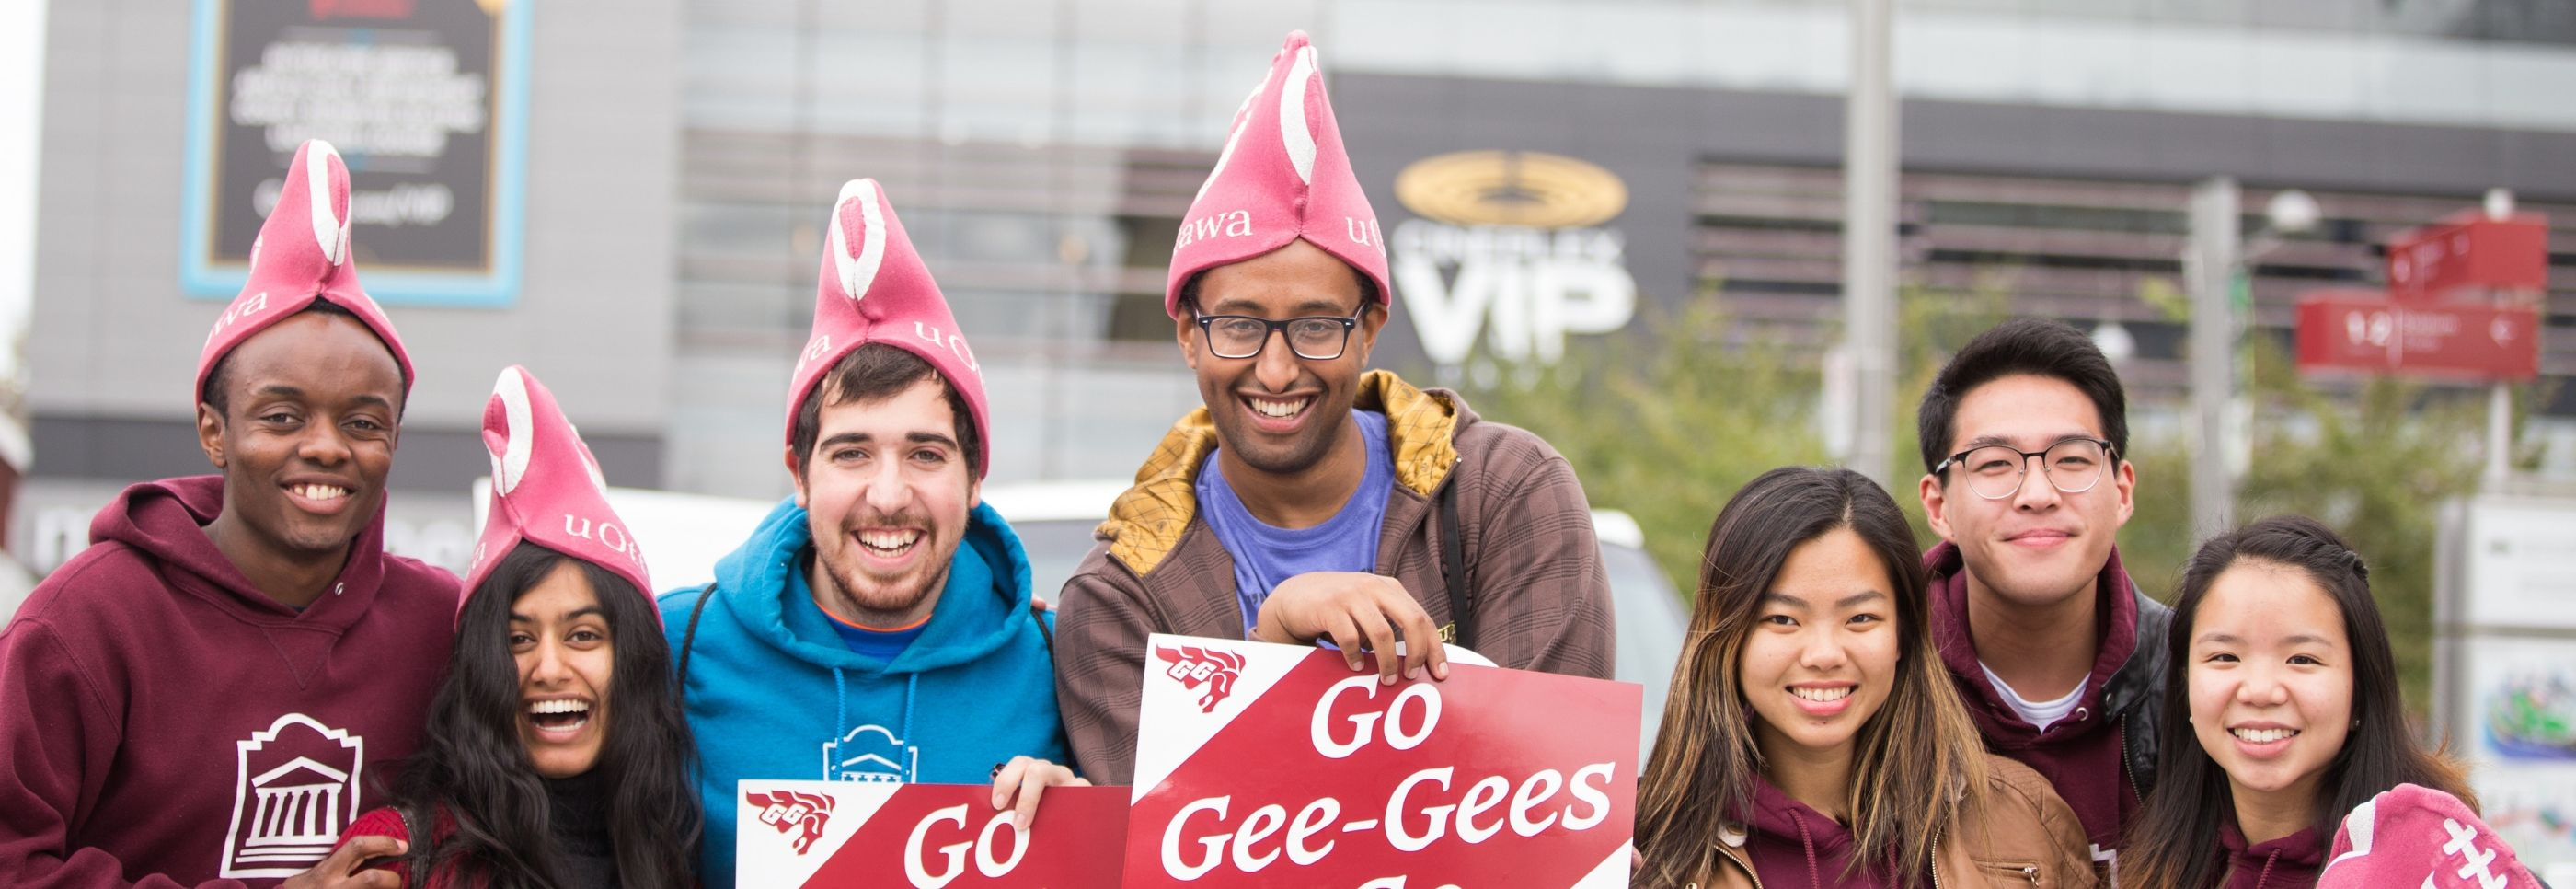 Alumni and students celebrating the uOttawa Gee-Gees.